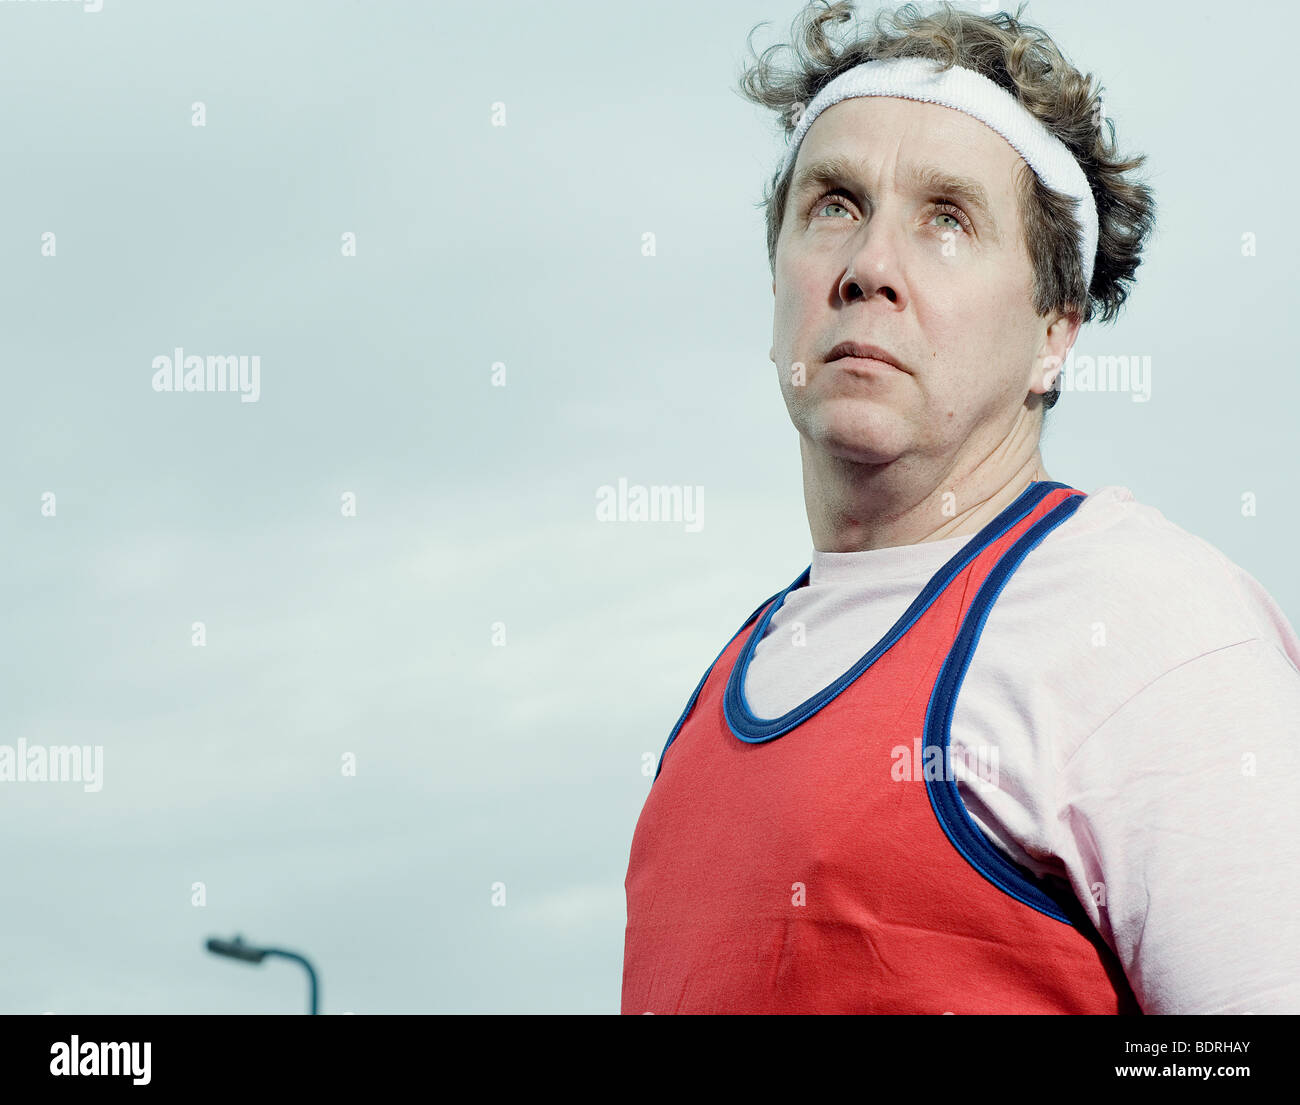 Man dress in jogging gear looking a bit daft but in a heroic pose - Stock Image